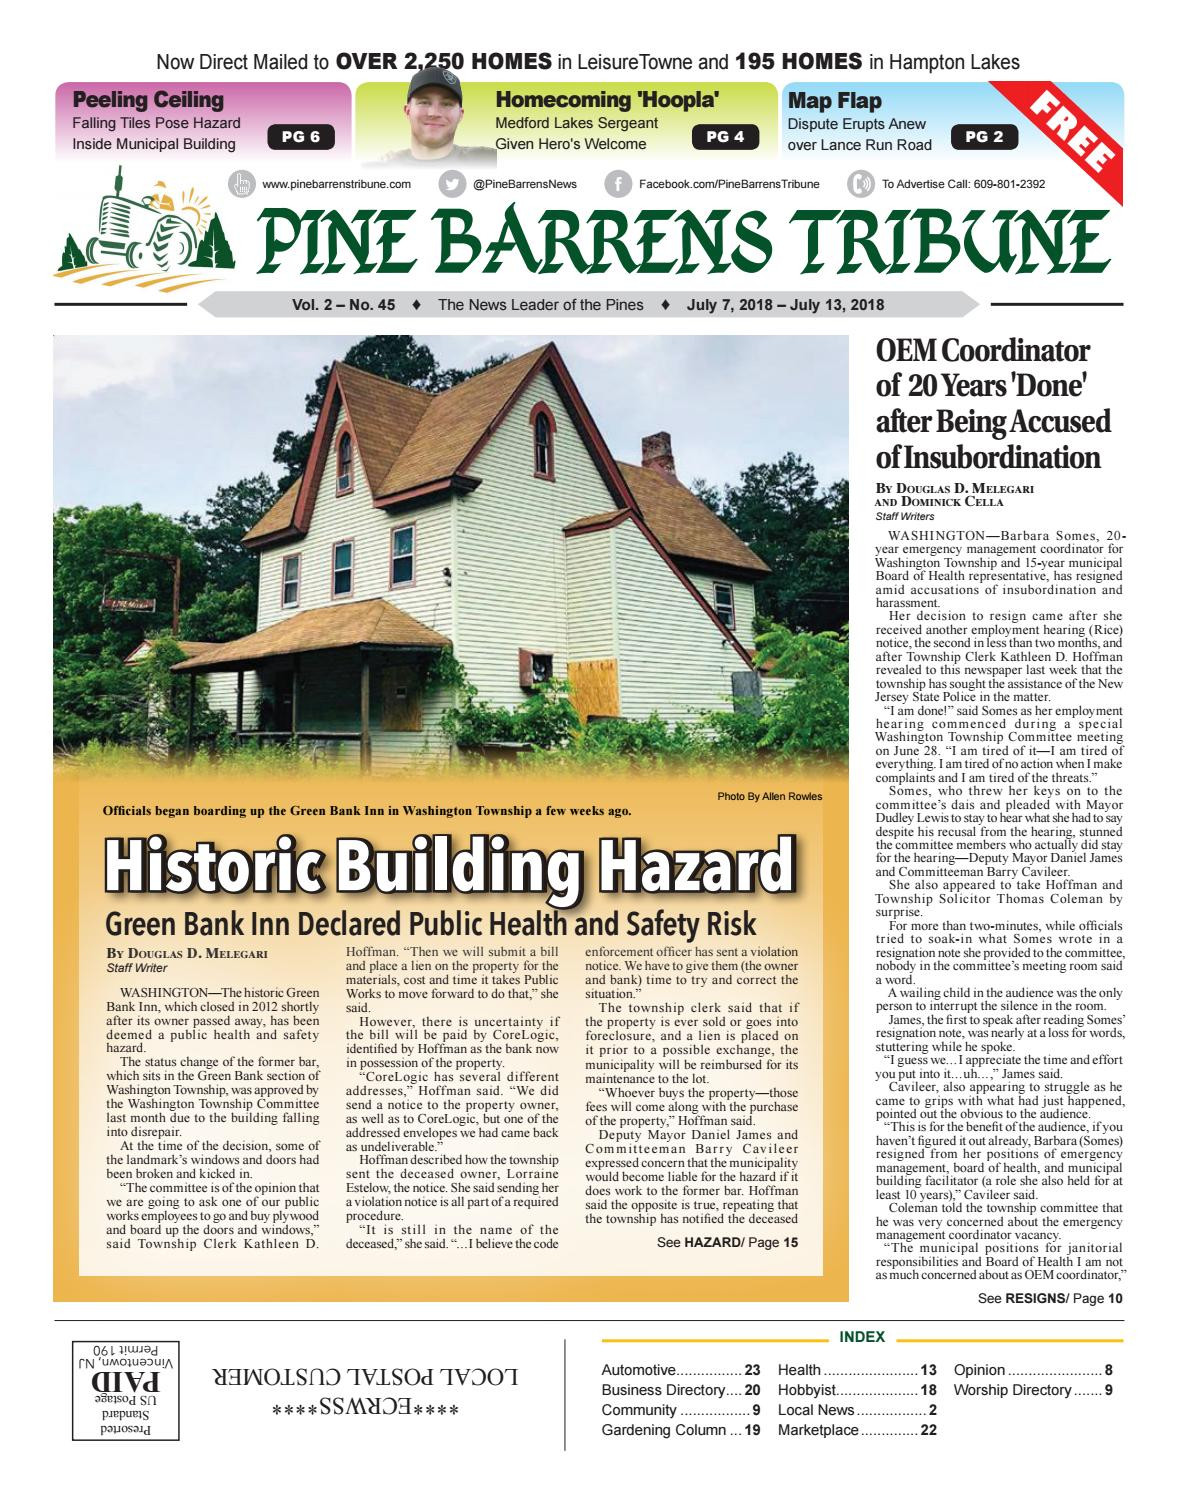 Dan Higgins Hardwood Floors Of July 7 2018 Pine Barrens Tribune by Pine Barrens Tribune issuu Intended for Page 1